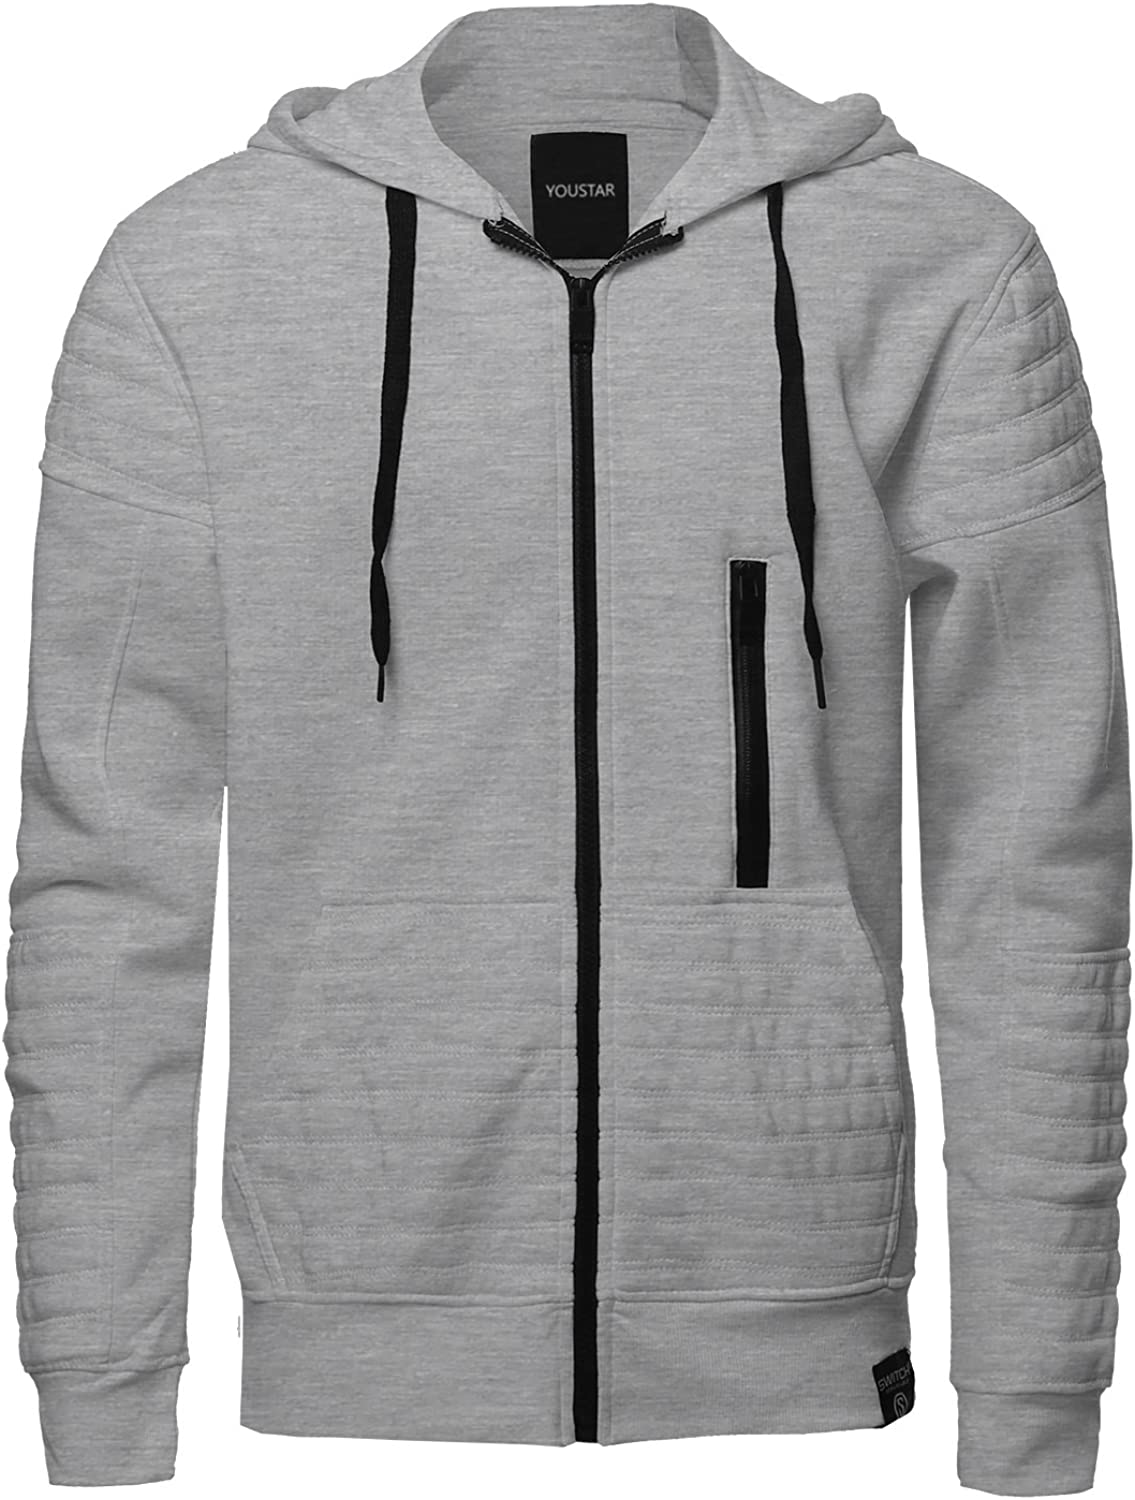 Youstar Men's Fashion Hoodie Jacket with Contrast Zipper and Ribbed Details